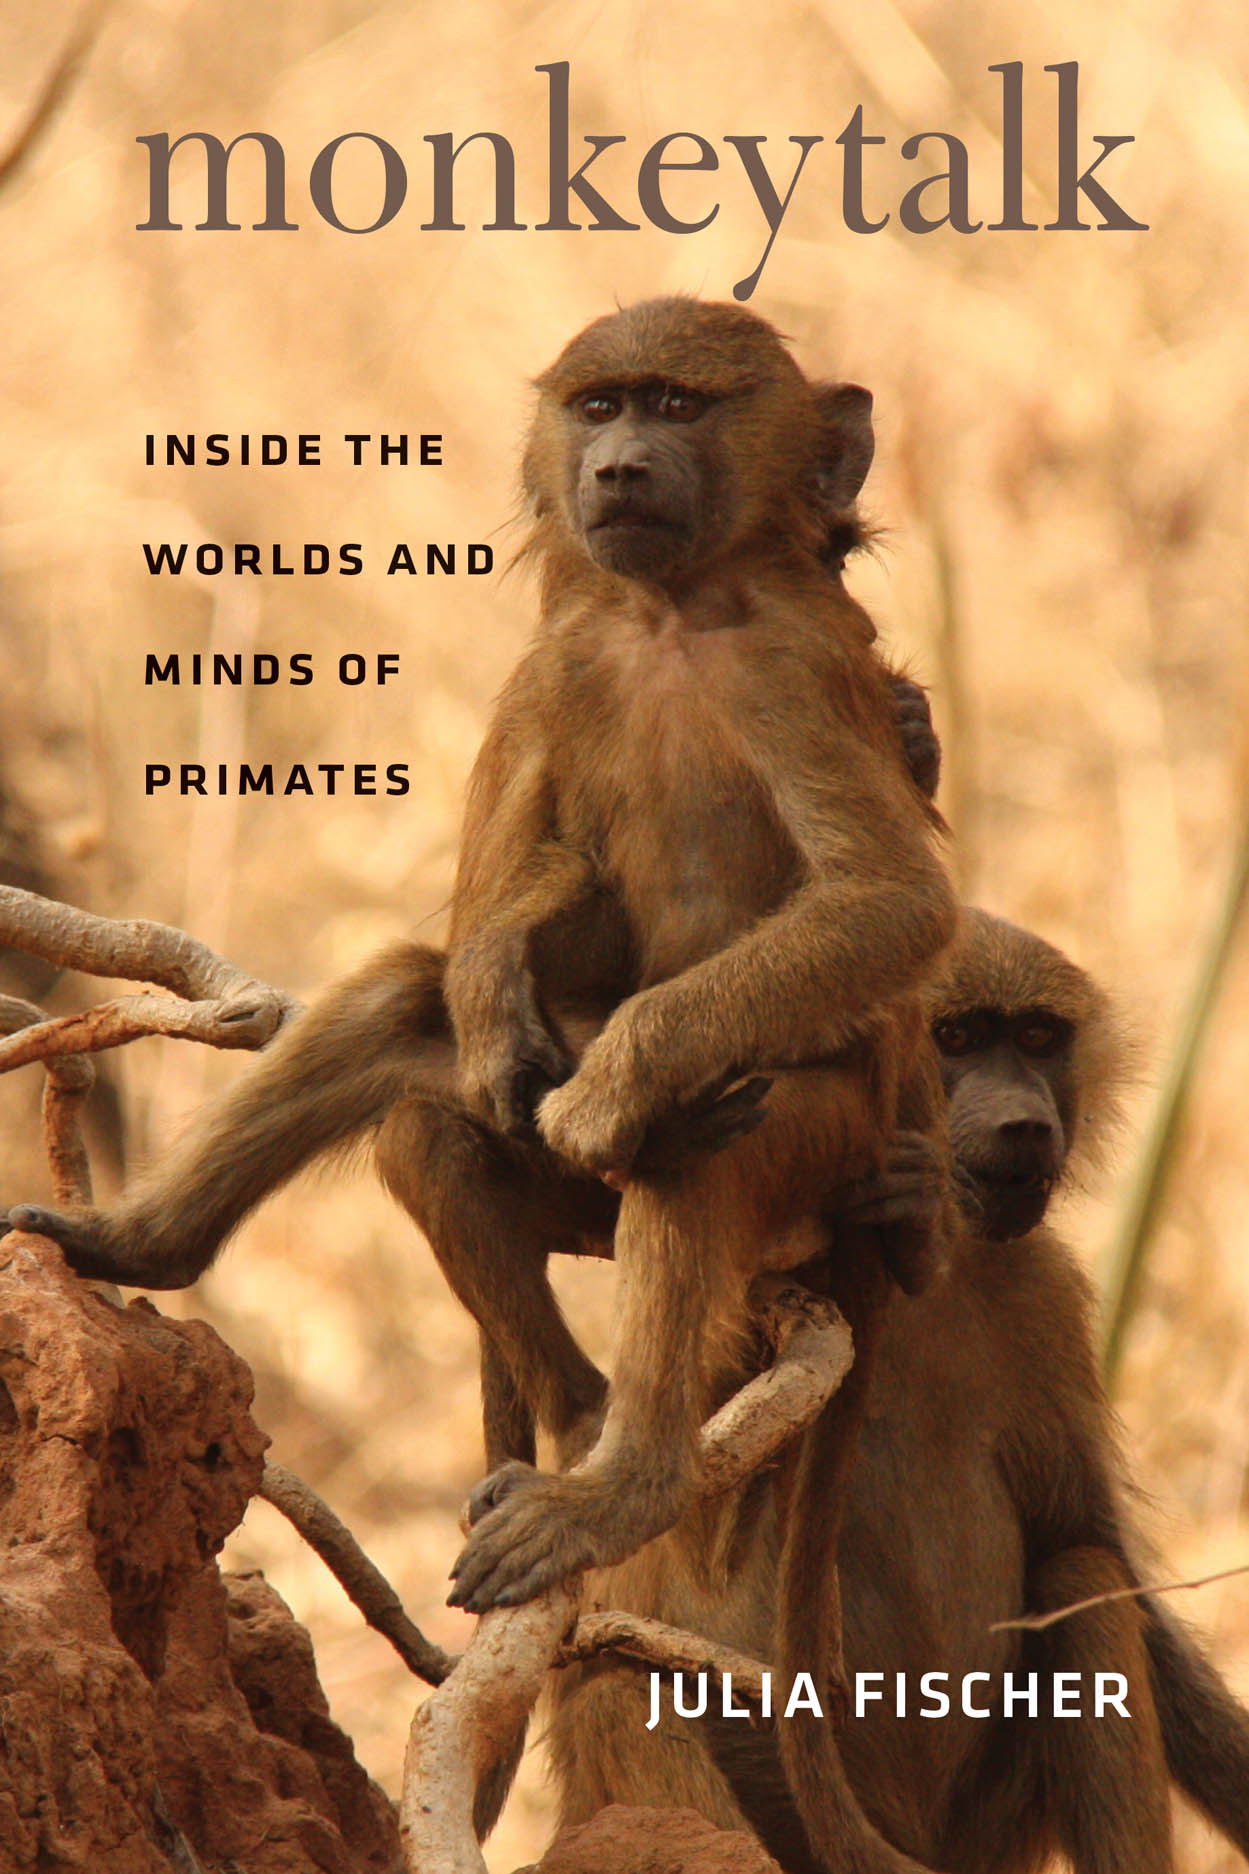 Monkeytalk: Inside the Worlds and Minds of Primates